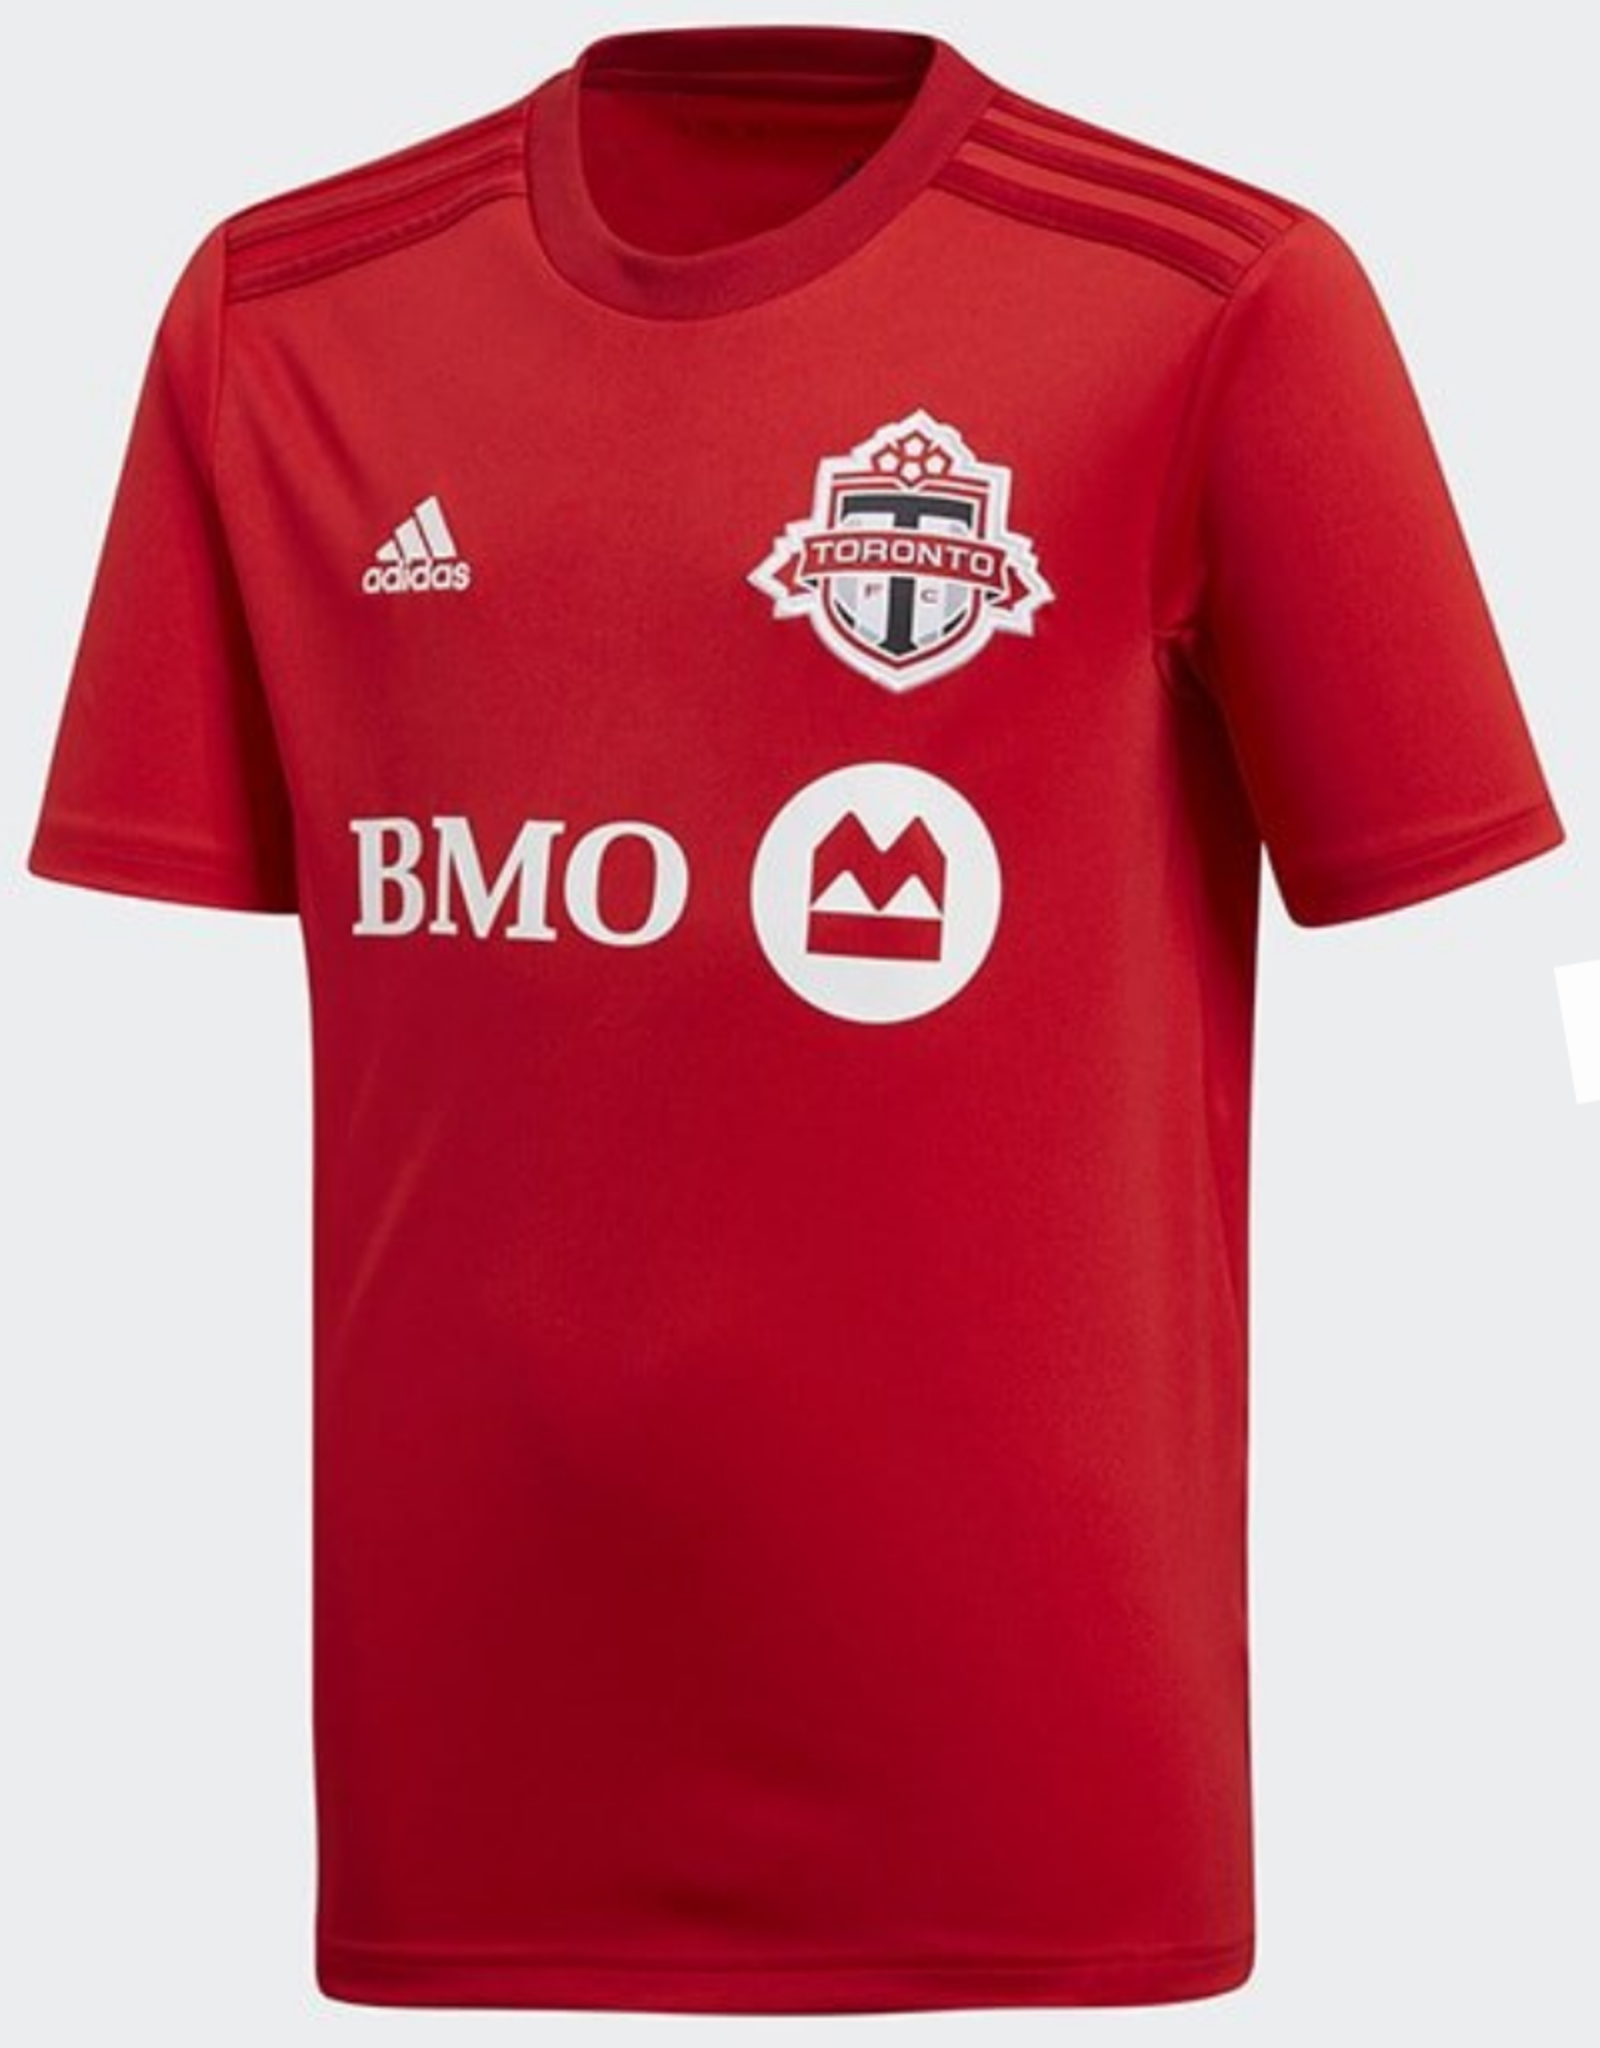 Adidas Adidas Youth '20 Home Soccer Jersey Toronto FC Red